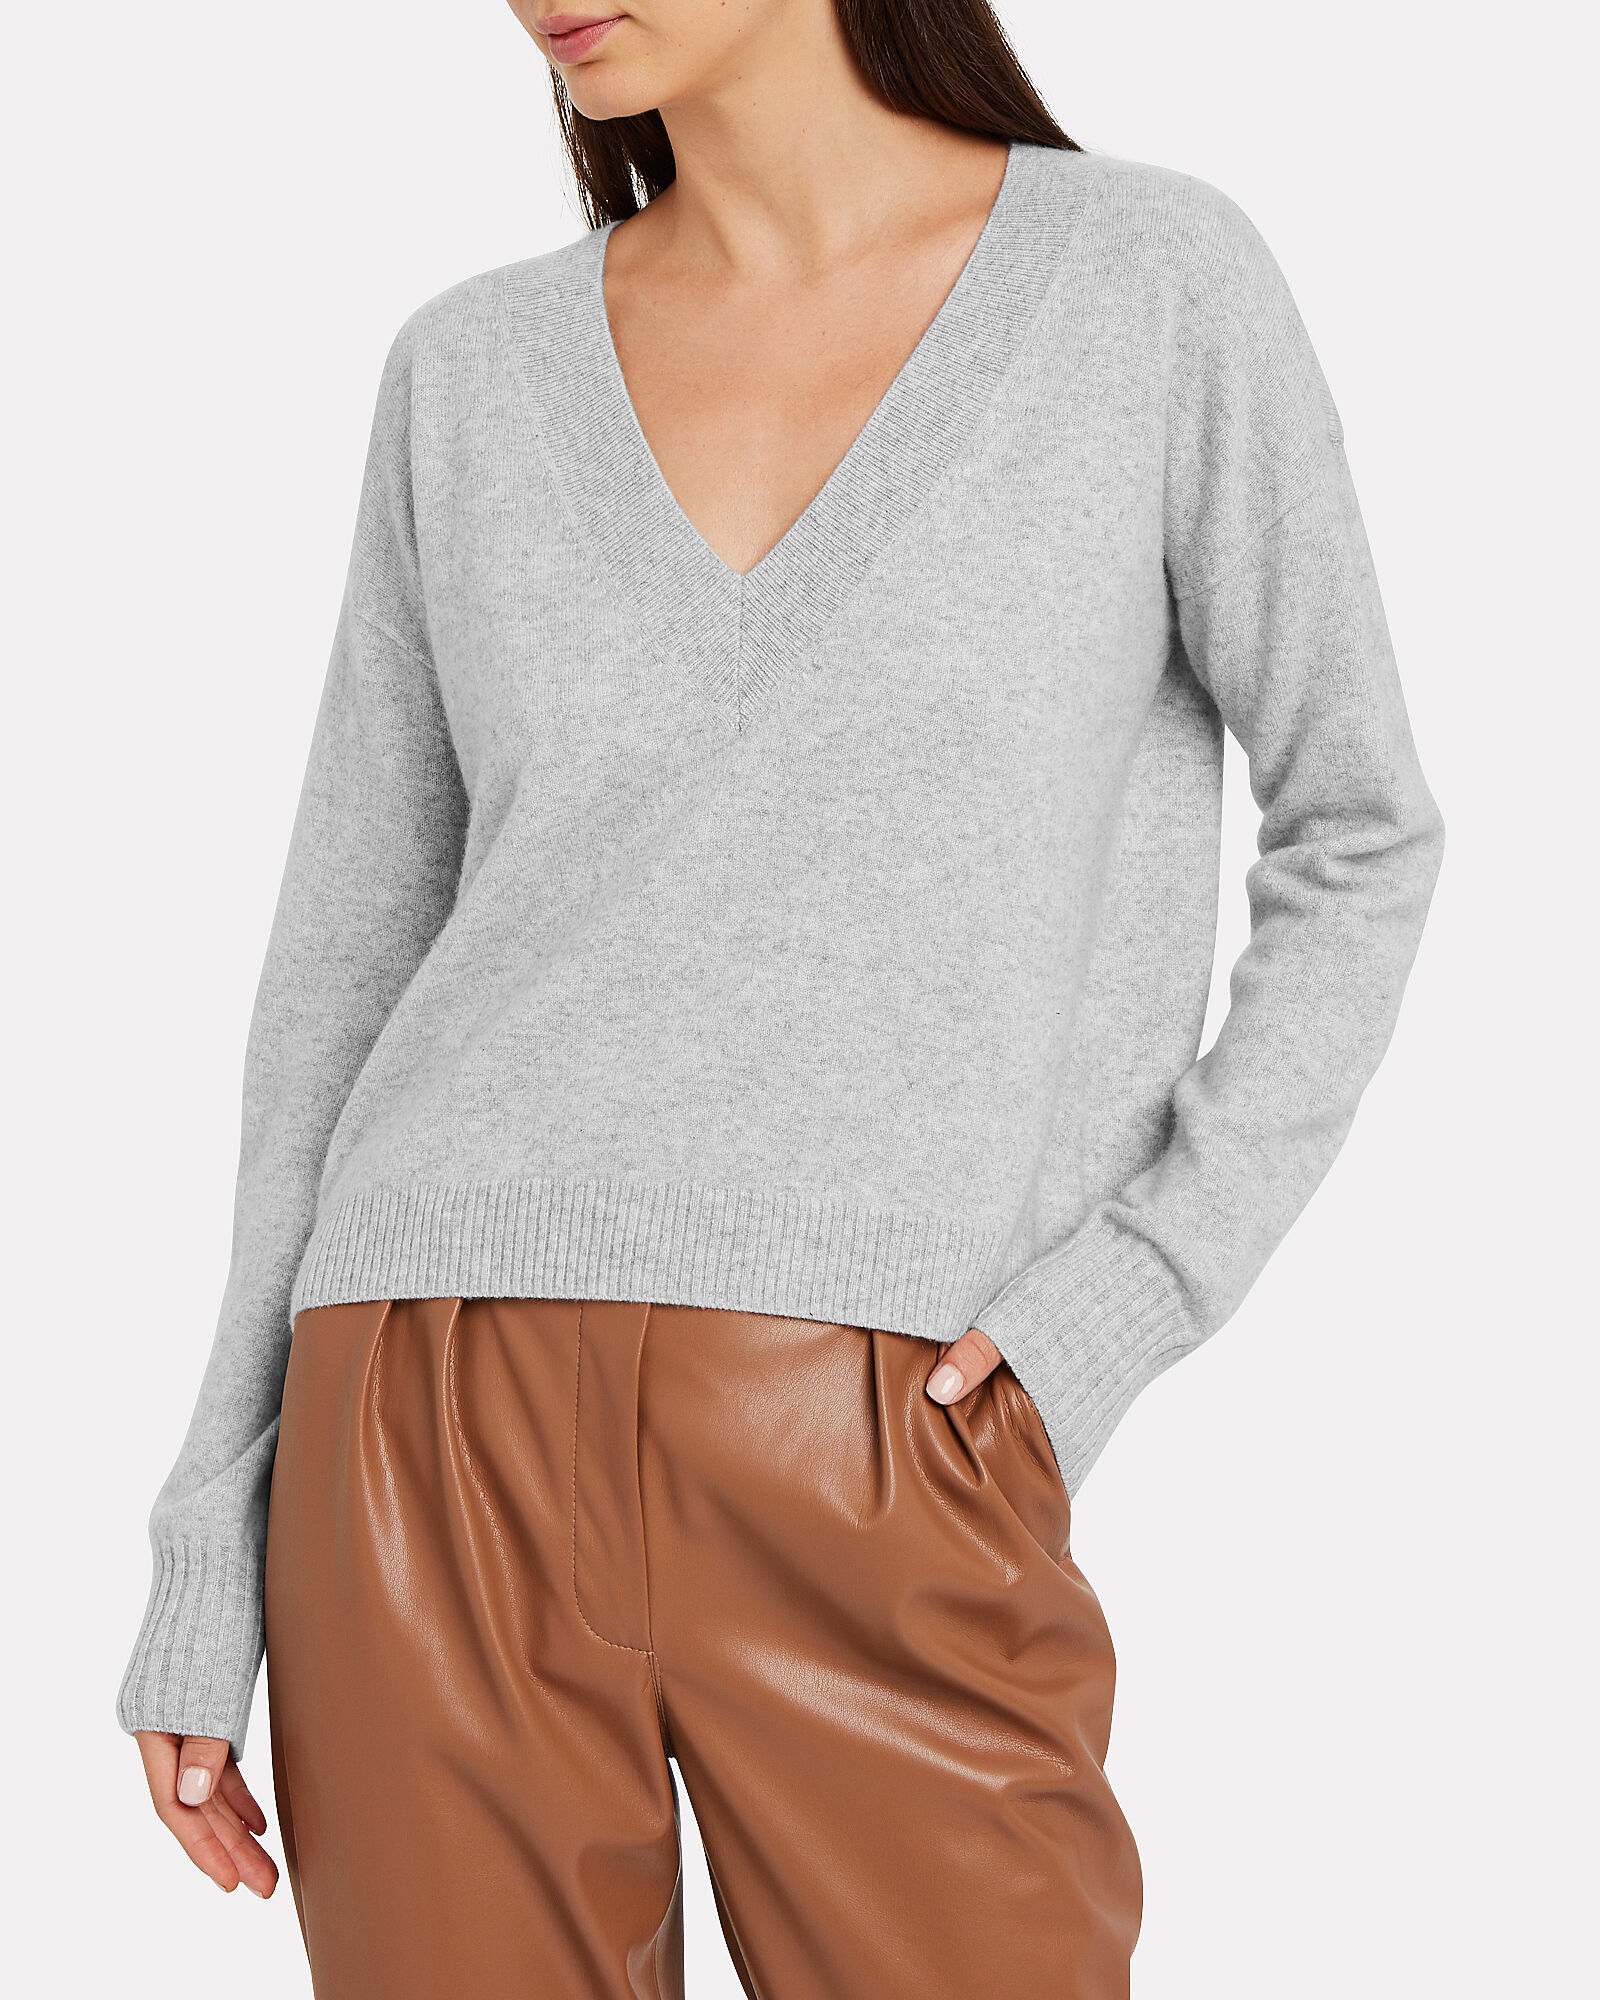 Elroy V-Neck Cashmere Sweater, LIGHT GREY, hi-res